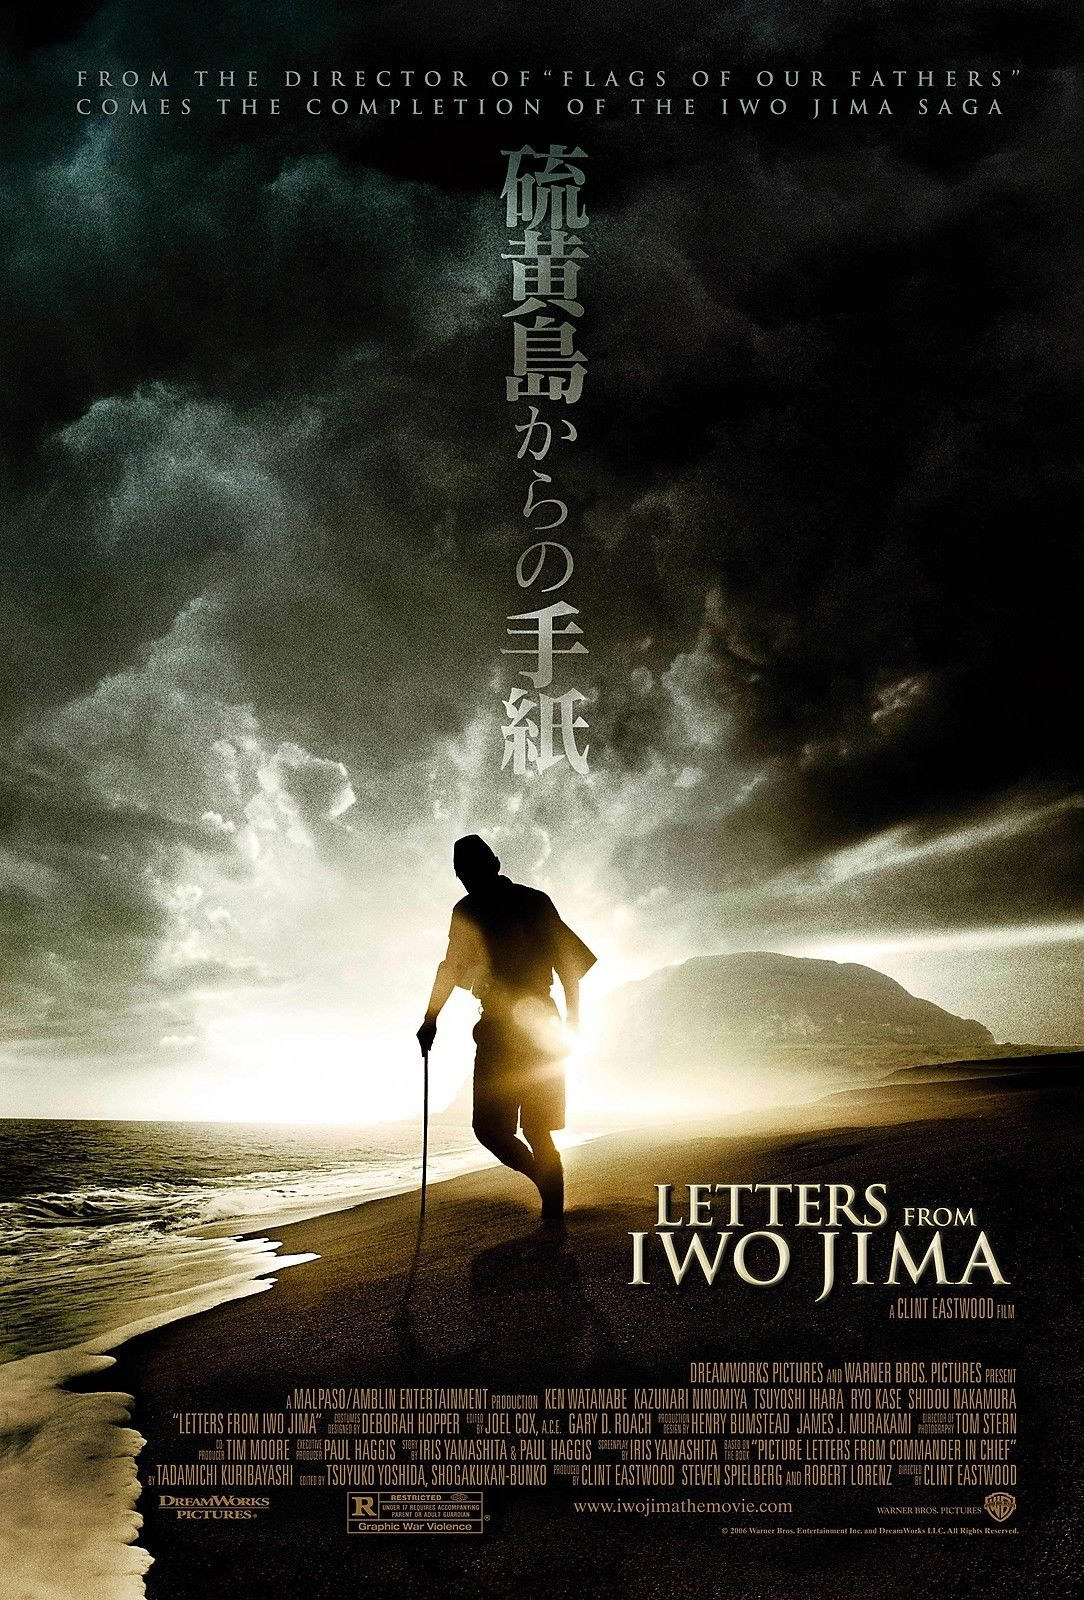 74200-LETTERS-FROM-IWO-JIMA-Movie-Clint-Eastwood-WWII-Wall-Print-Poster-Affiche